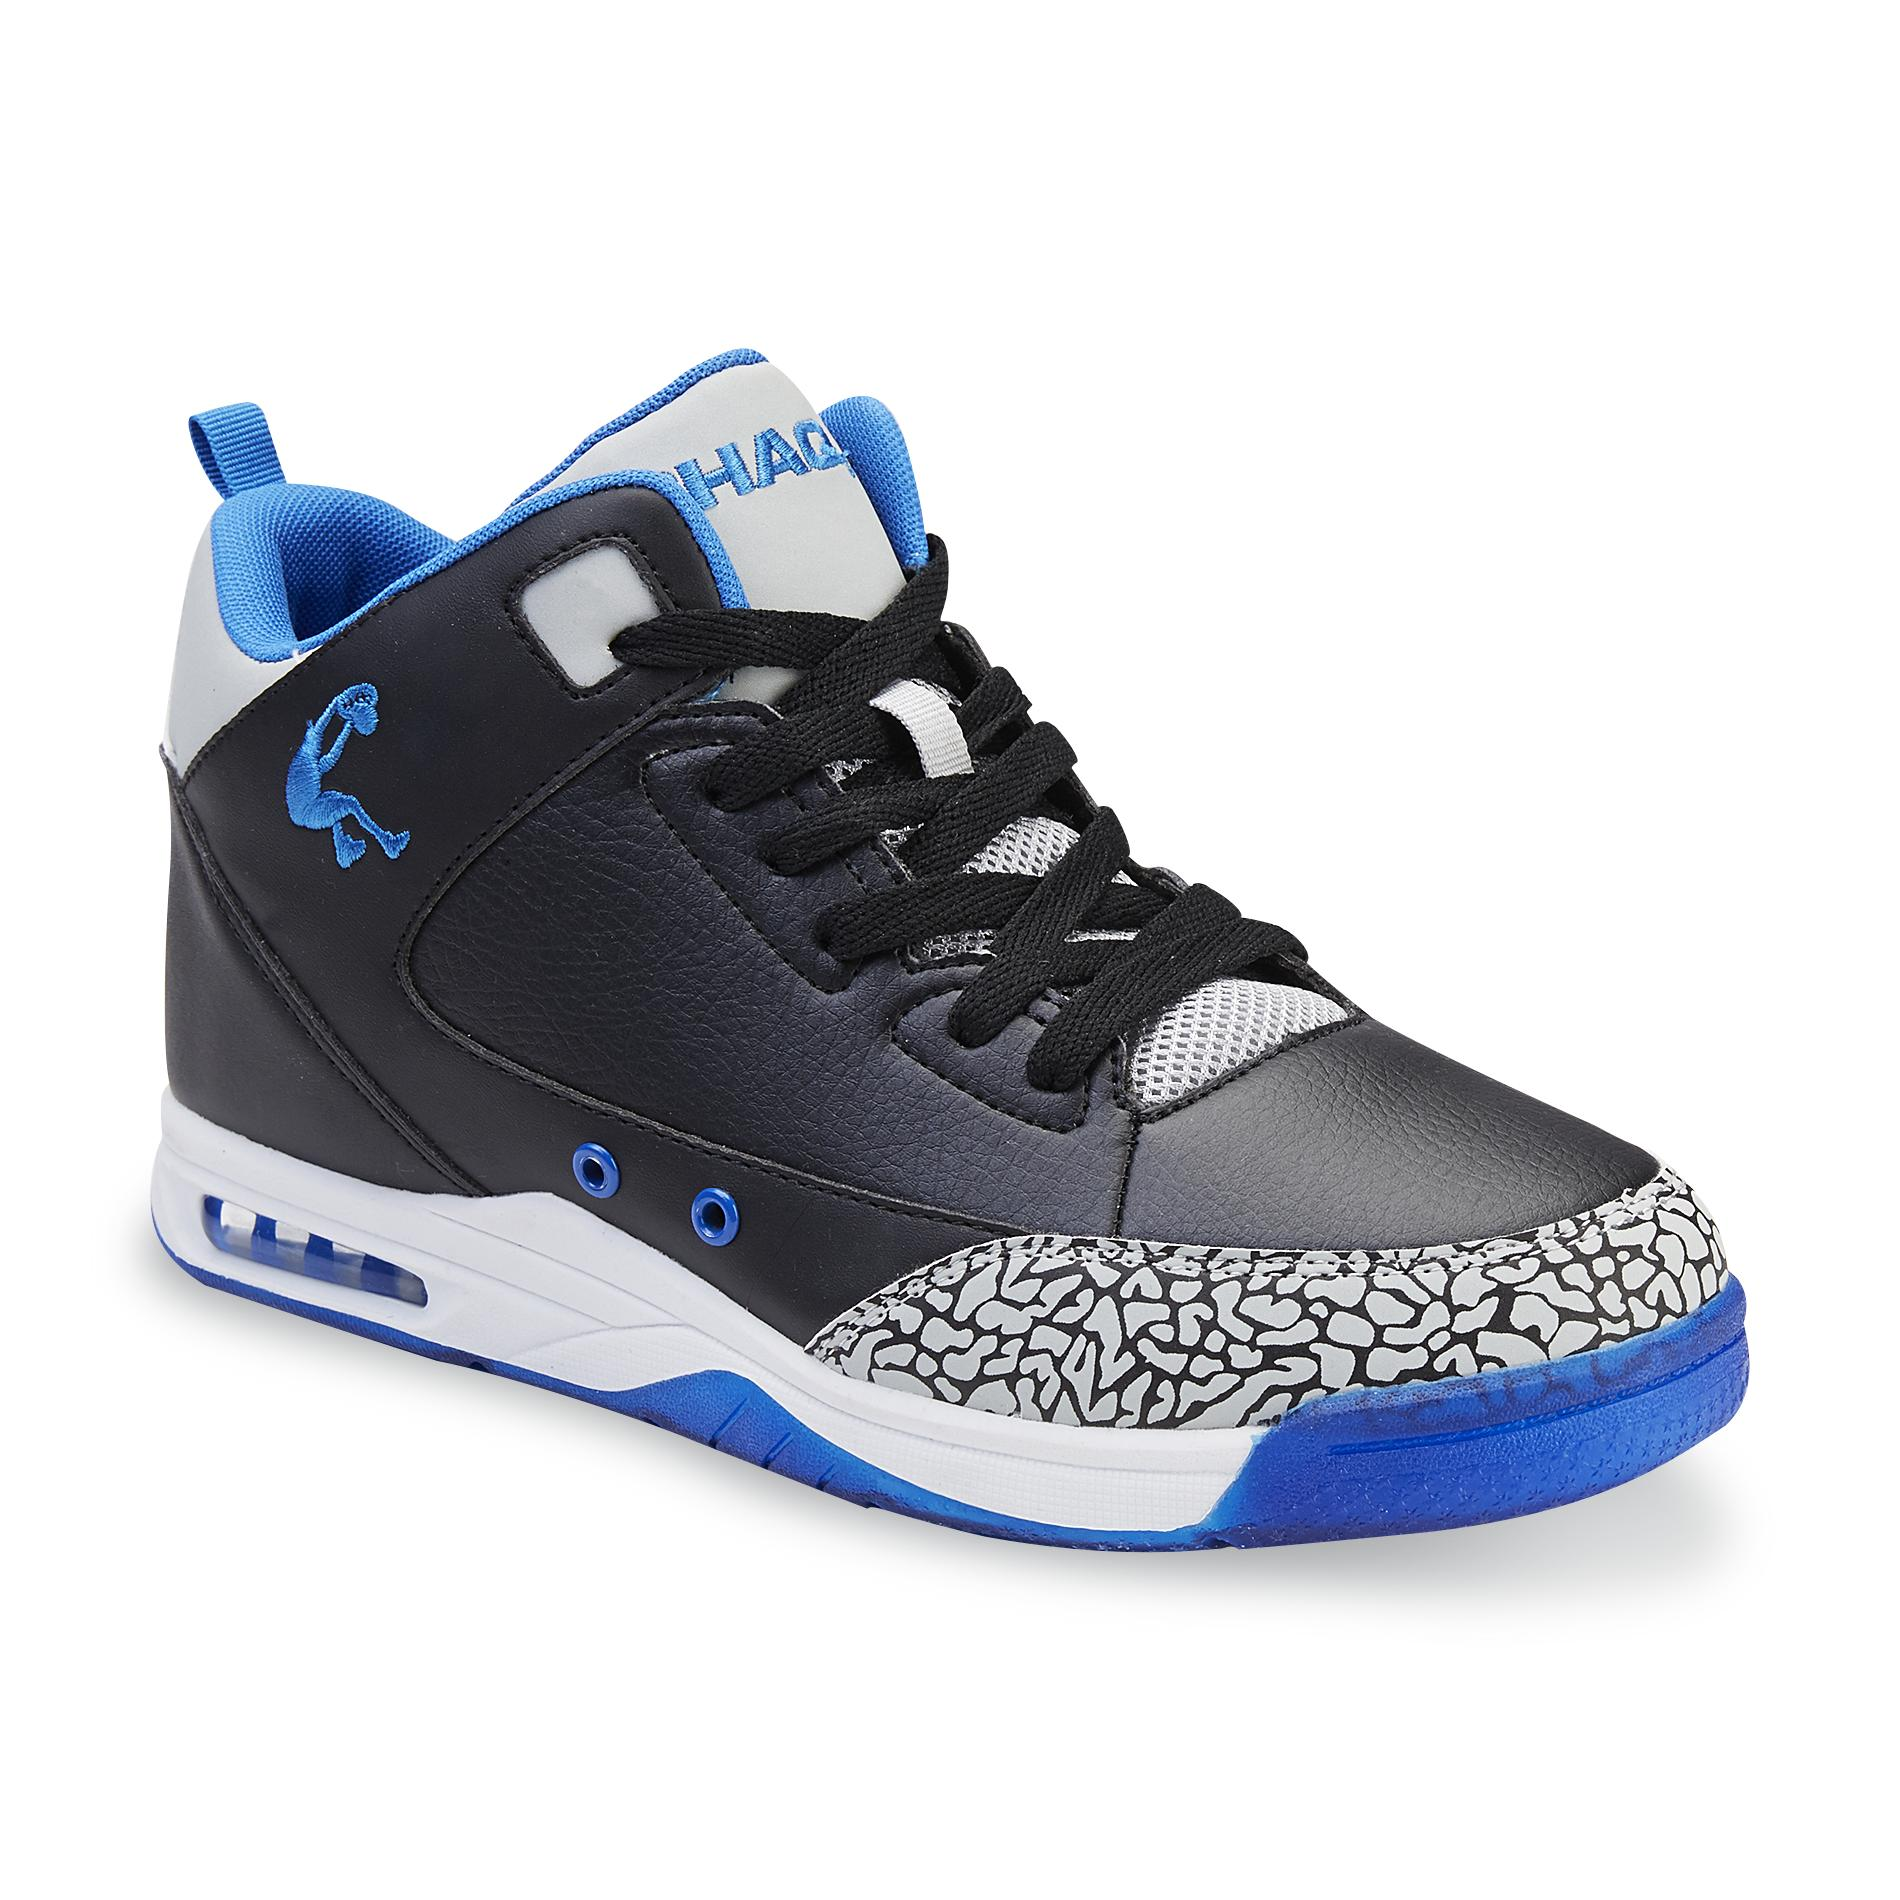 Baby Jordan Shoes Clearance